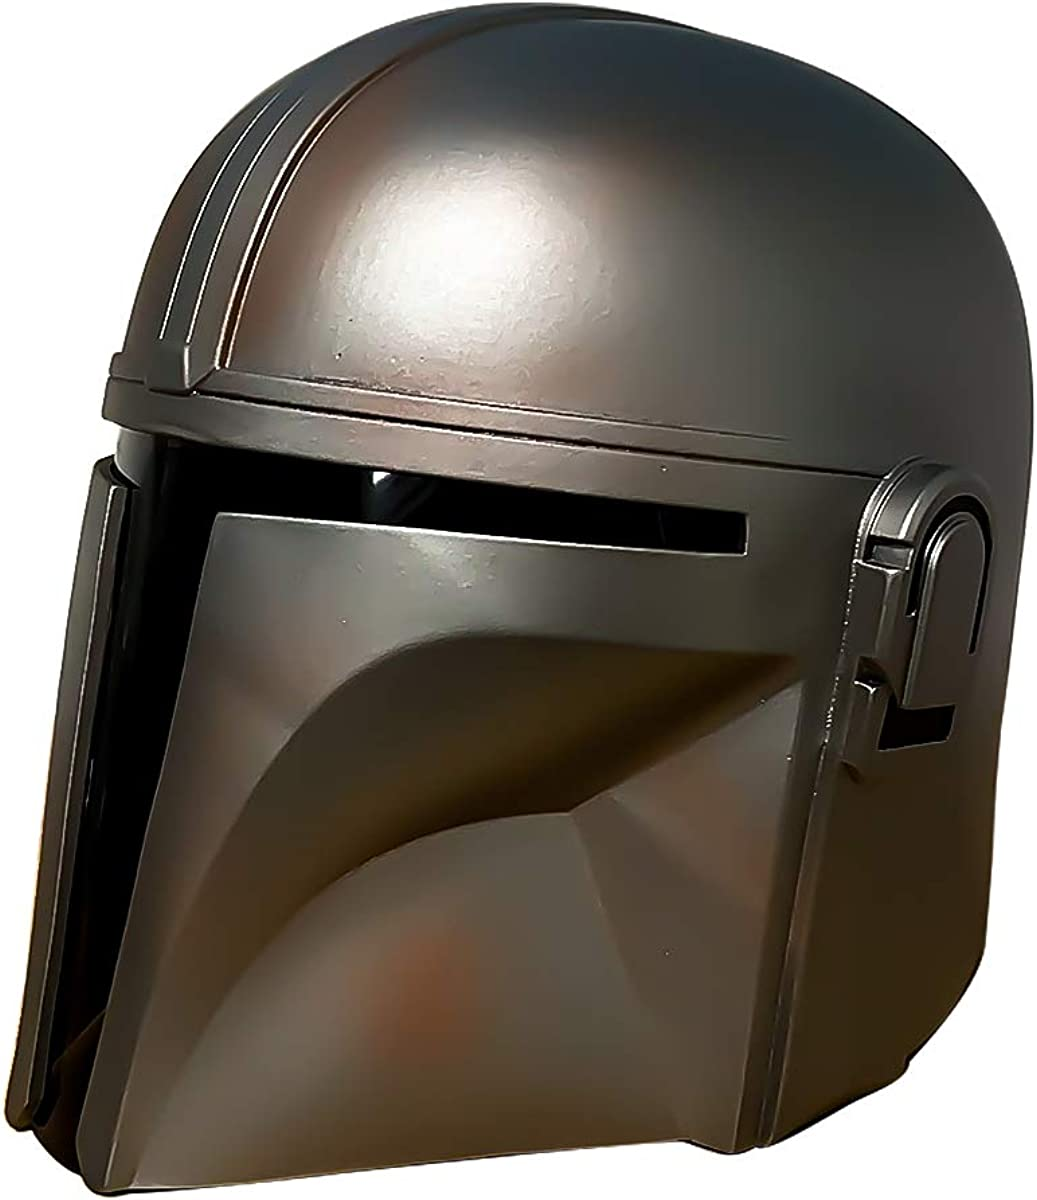 Haho The Mandalorian Helmet Large Size Star Wars COS play PVC Injection Molded